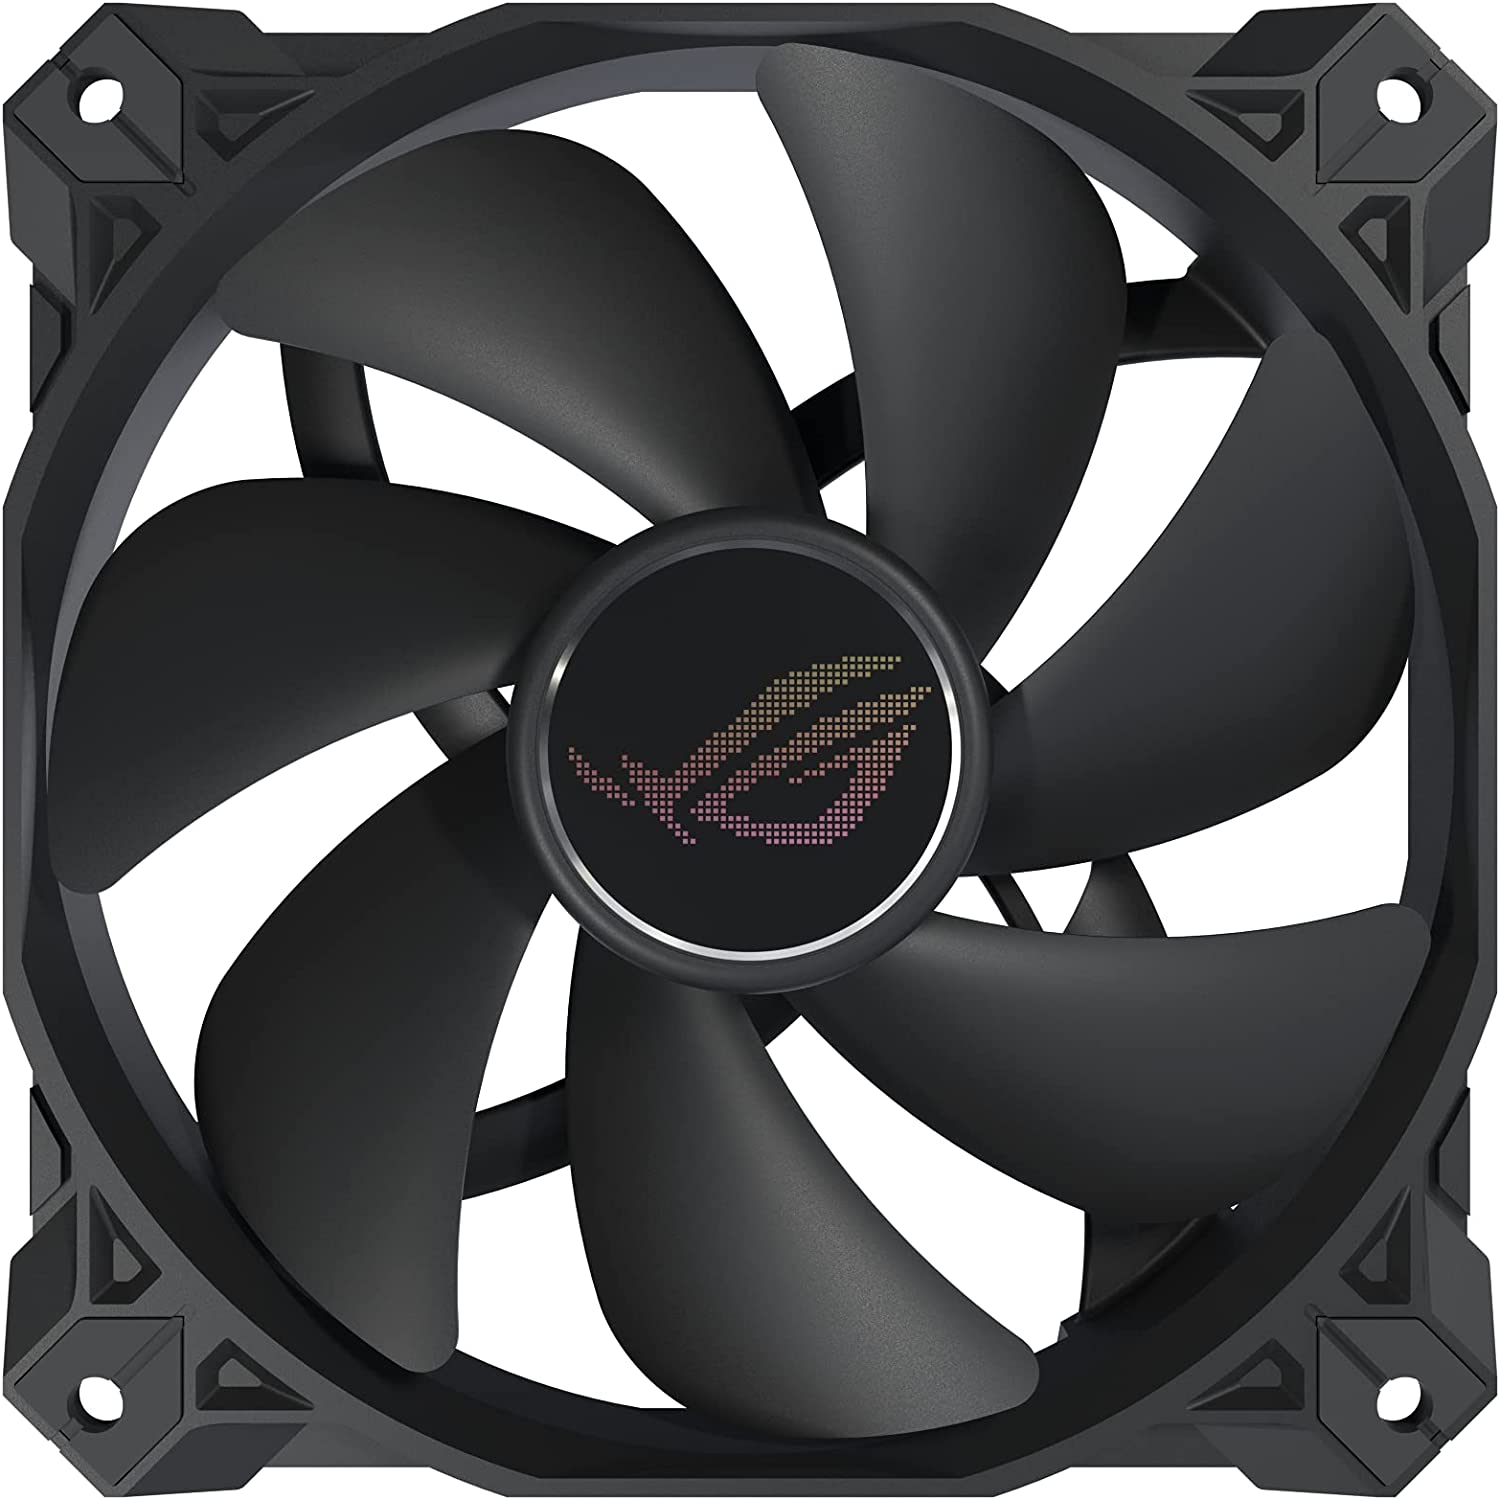 ASUS ROG Strix XF120 Whisper-Quiet Super intense SALE 4-pin for PC PWM Cases latest Fan